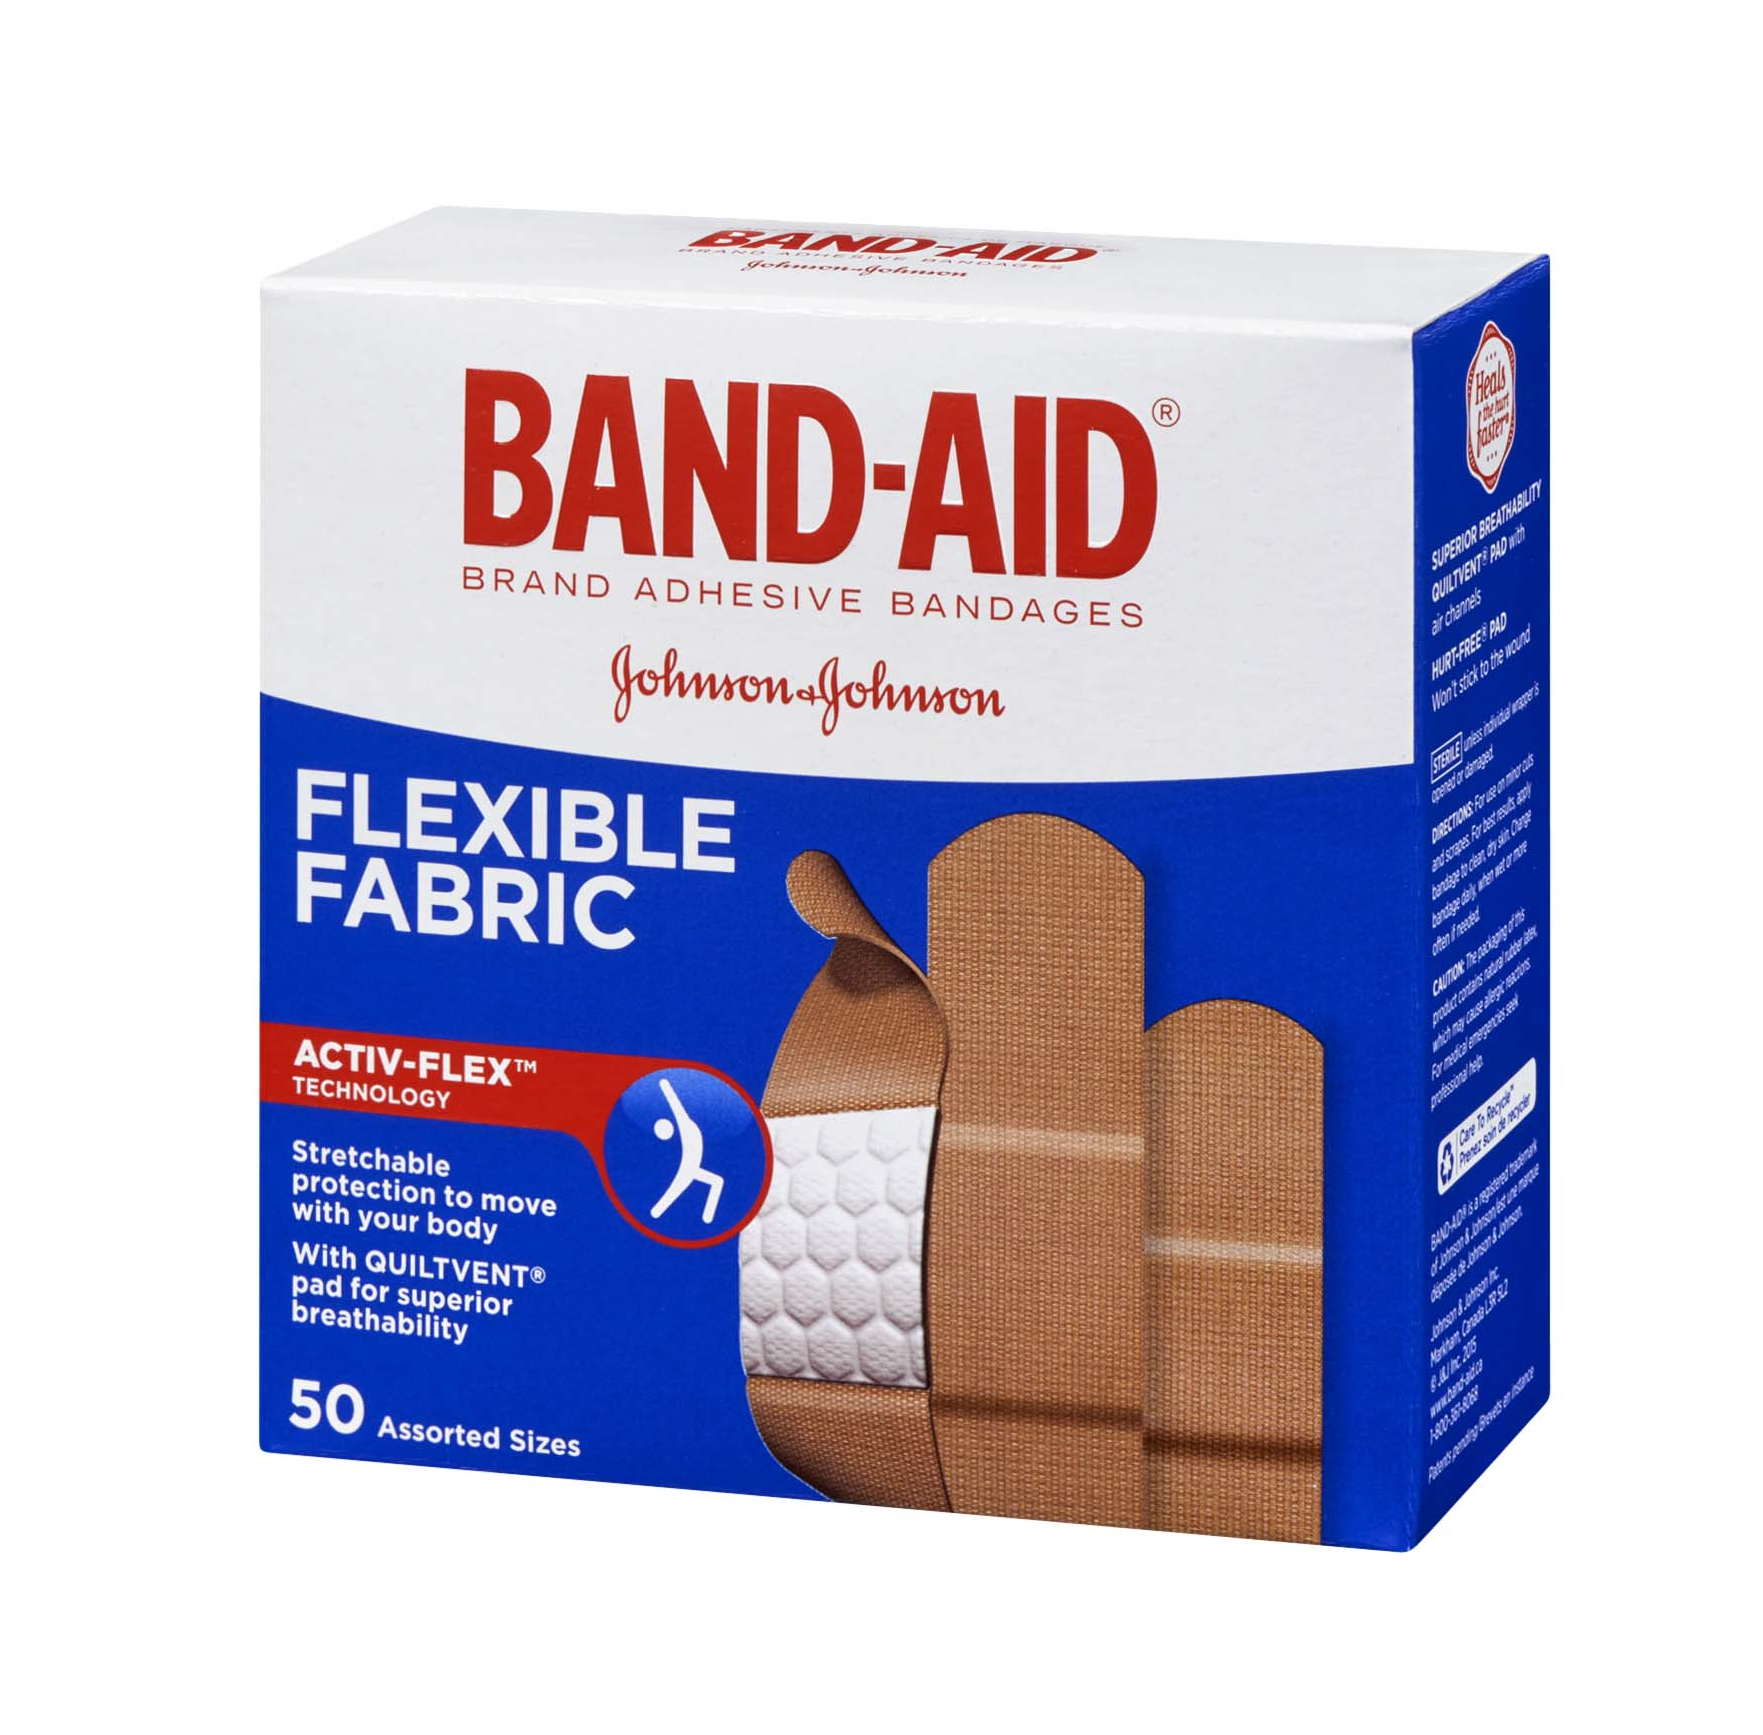 Band-Aid Flexible Fabric Assorted Sizes 50